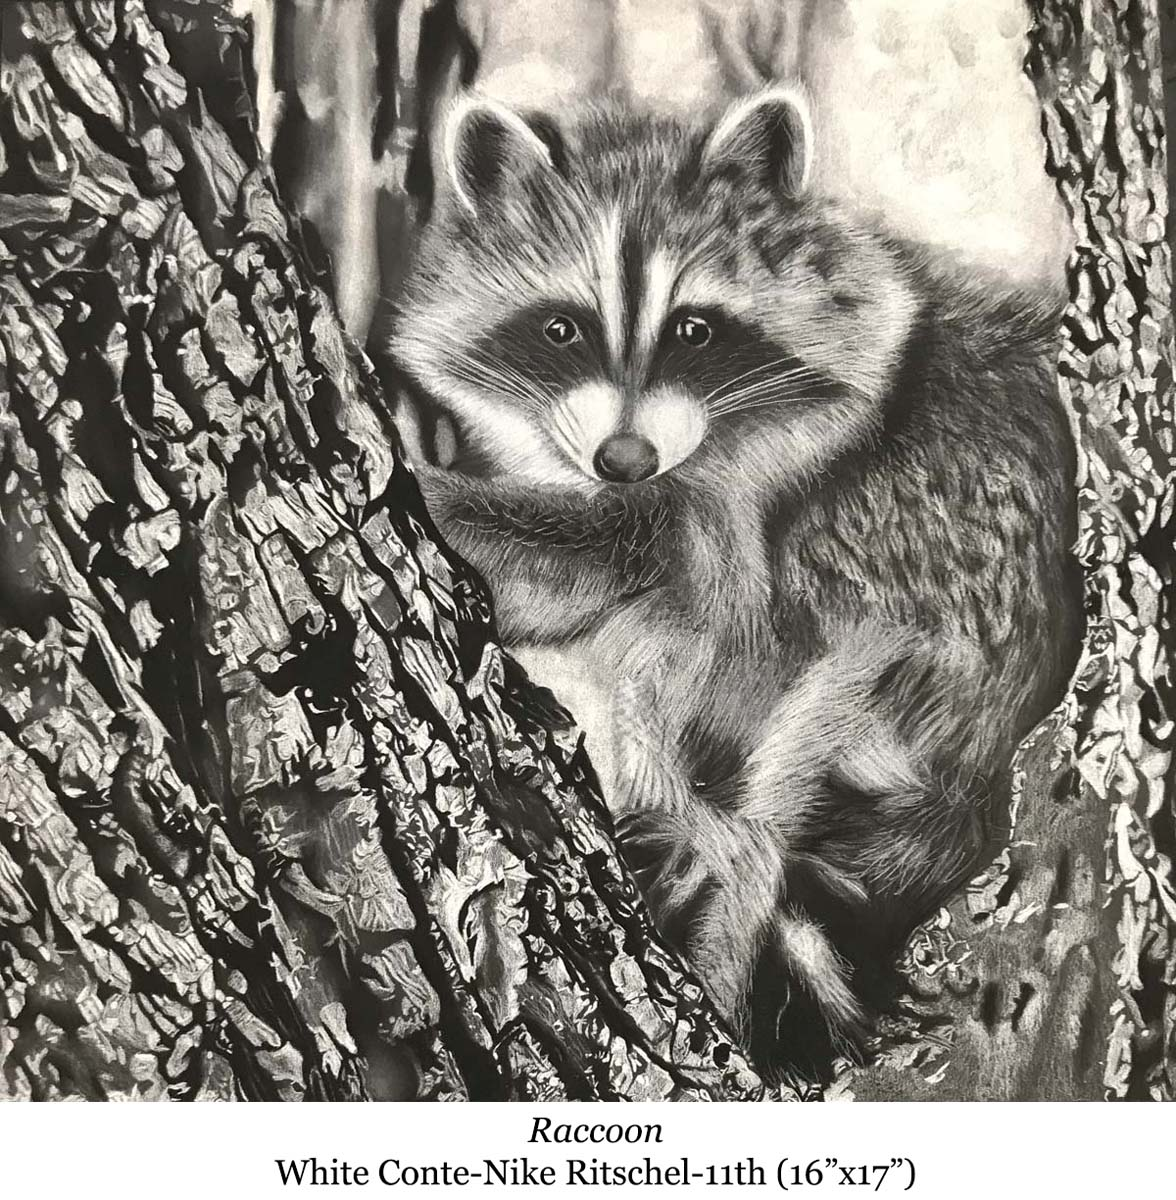 1588002940-raccoon-white_conte-nike_ritschel-11th__16_x17__